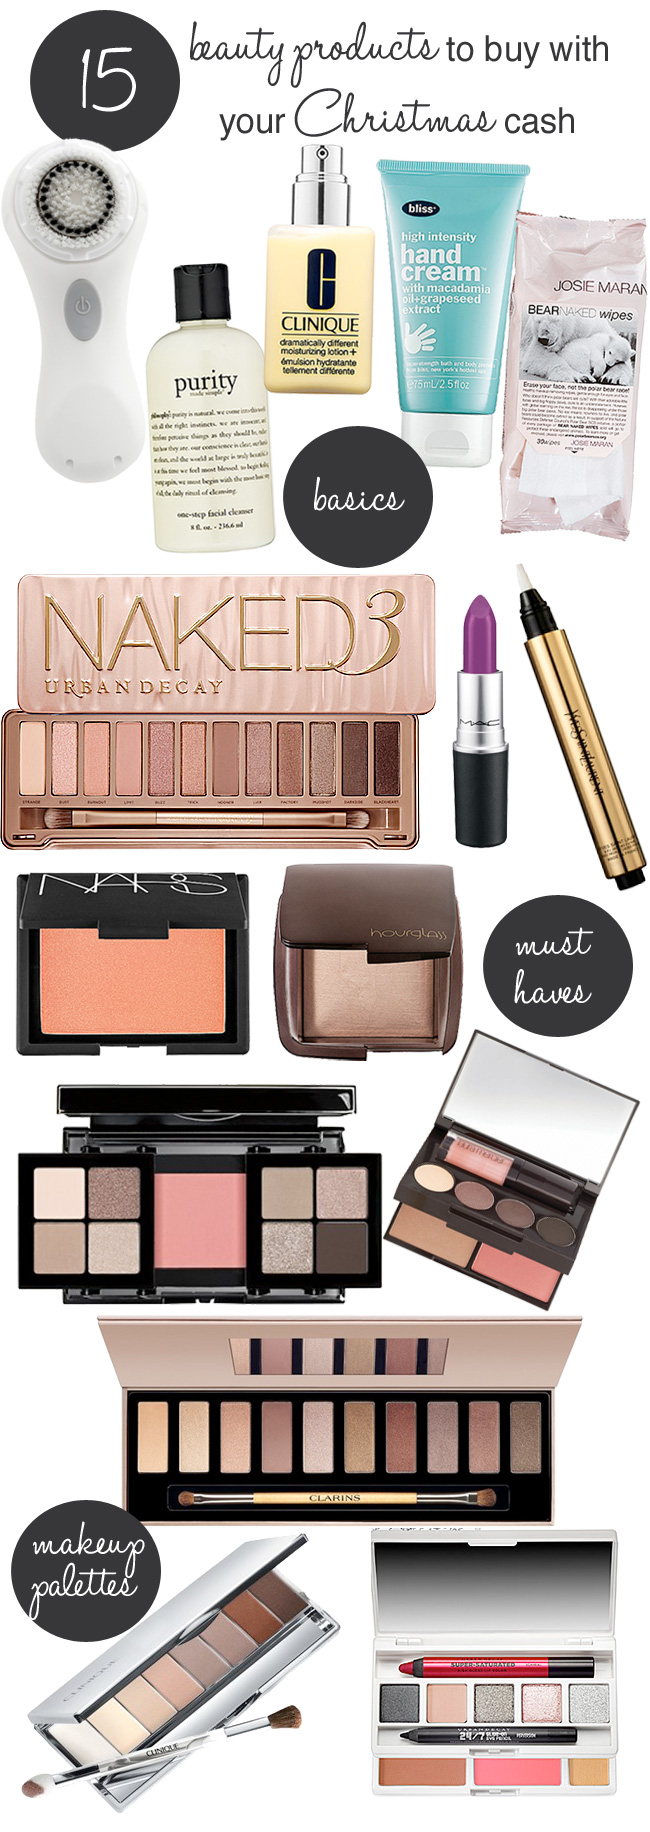 Got Christmas cash? These are the beauty products you should buy!